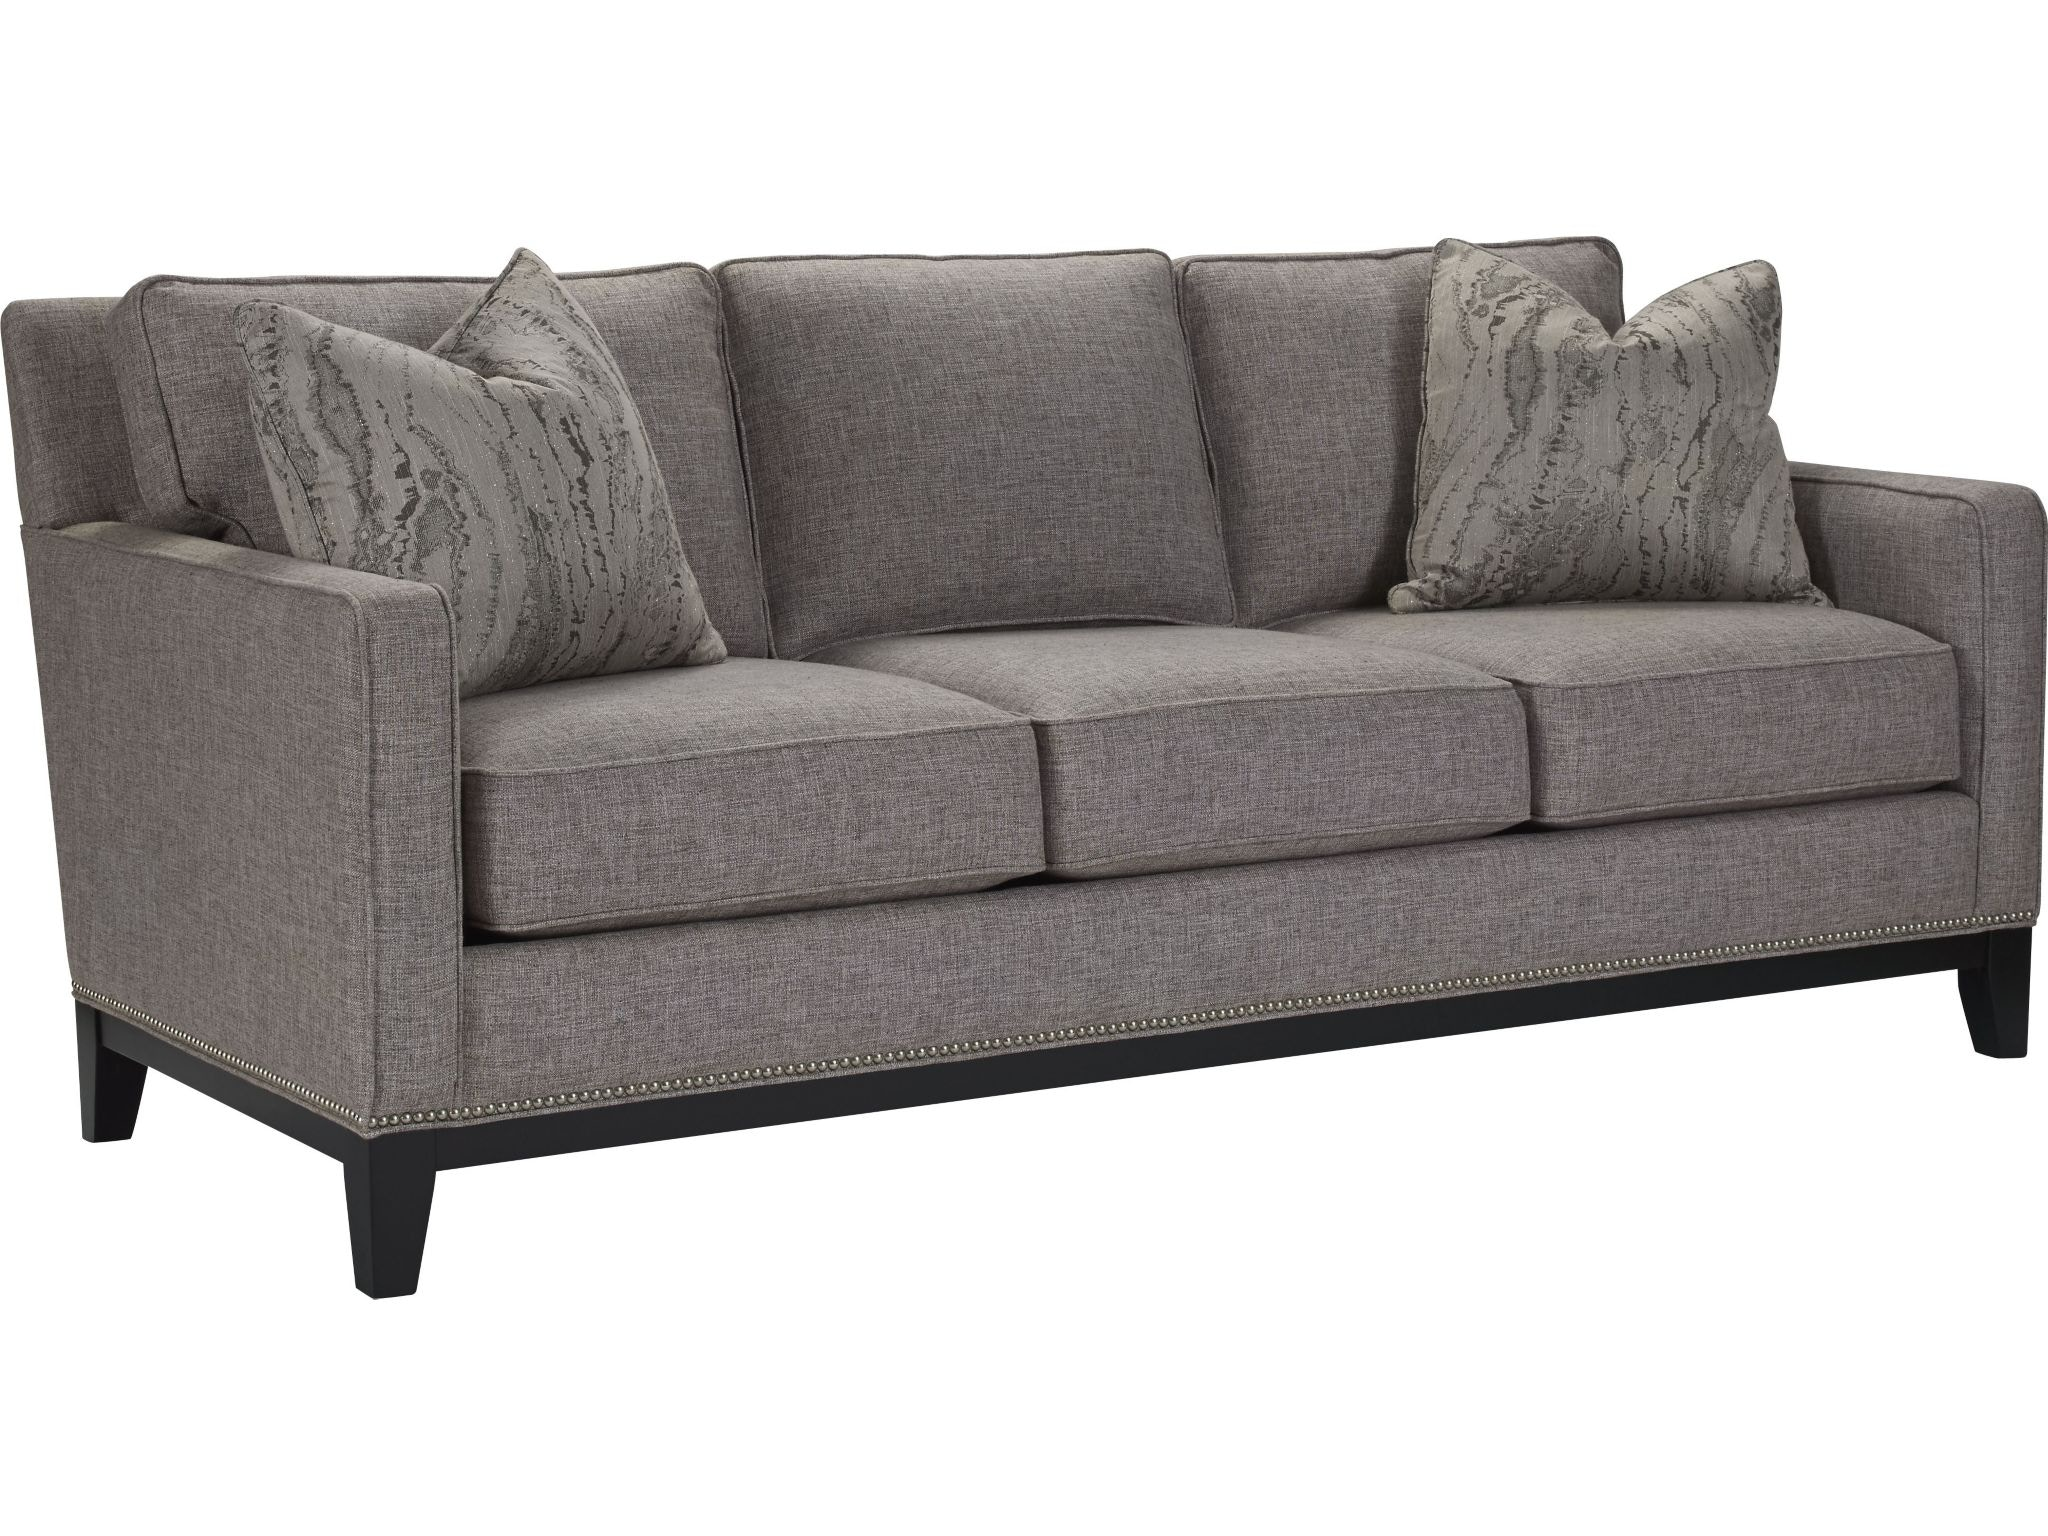 Superbe Thomasville Living Room Markham Sleeper Sofa (Custom) T100 12SLC At Whitley  Furniture Galleries